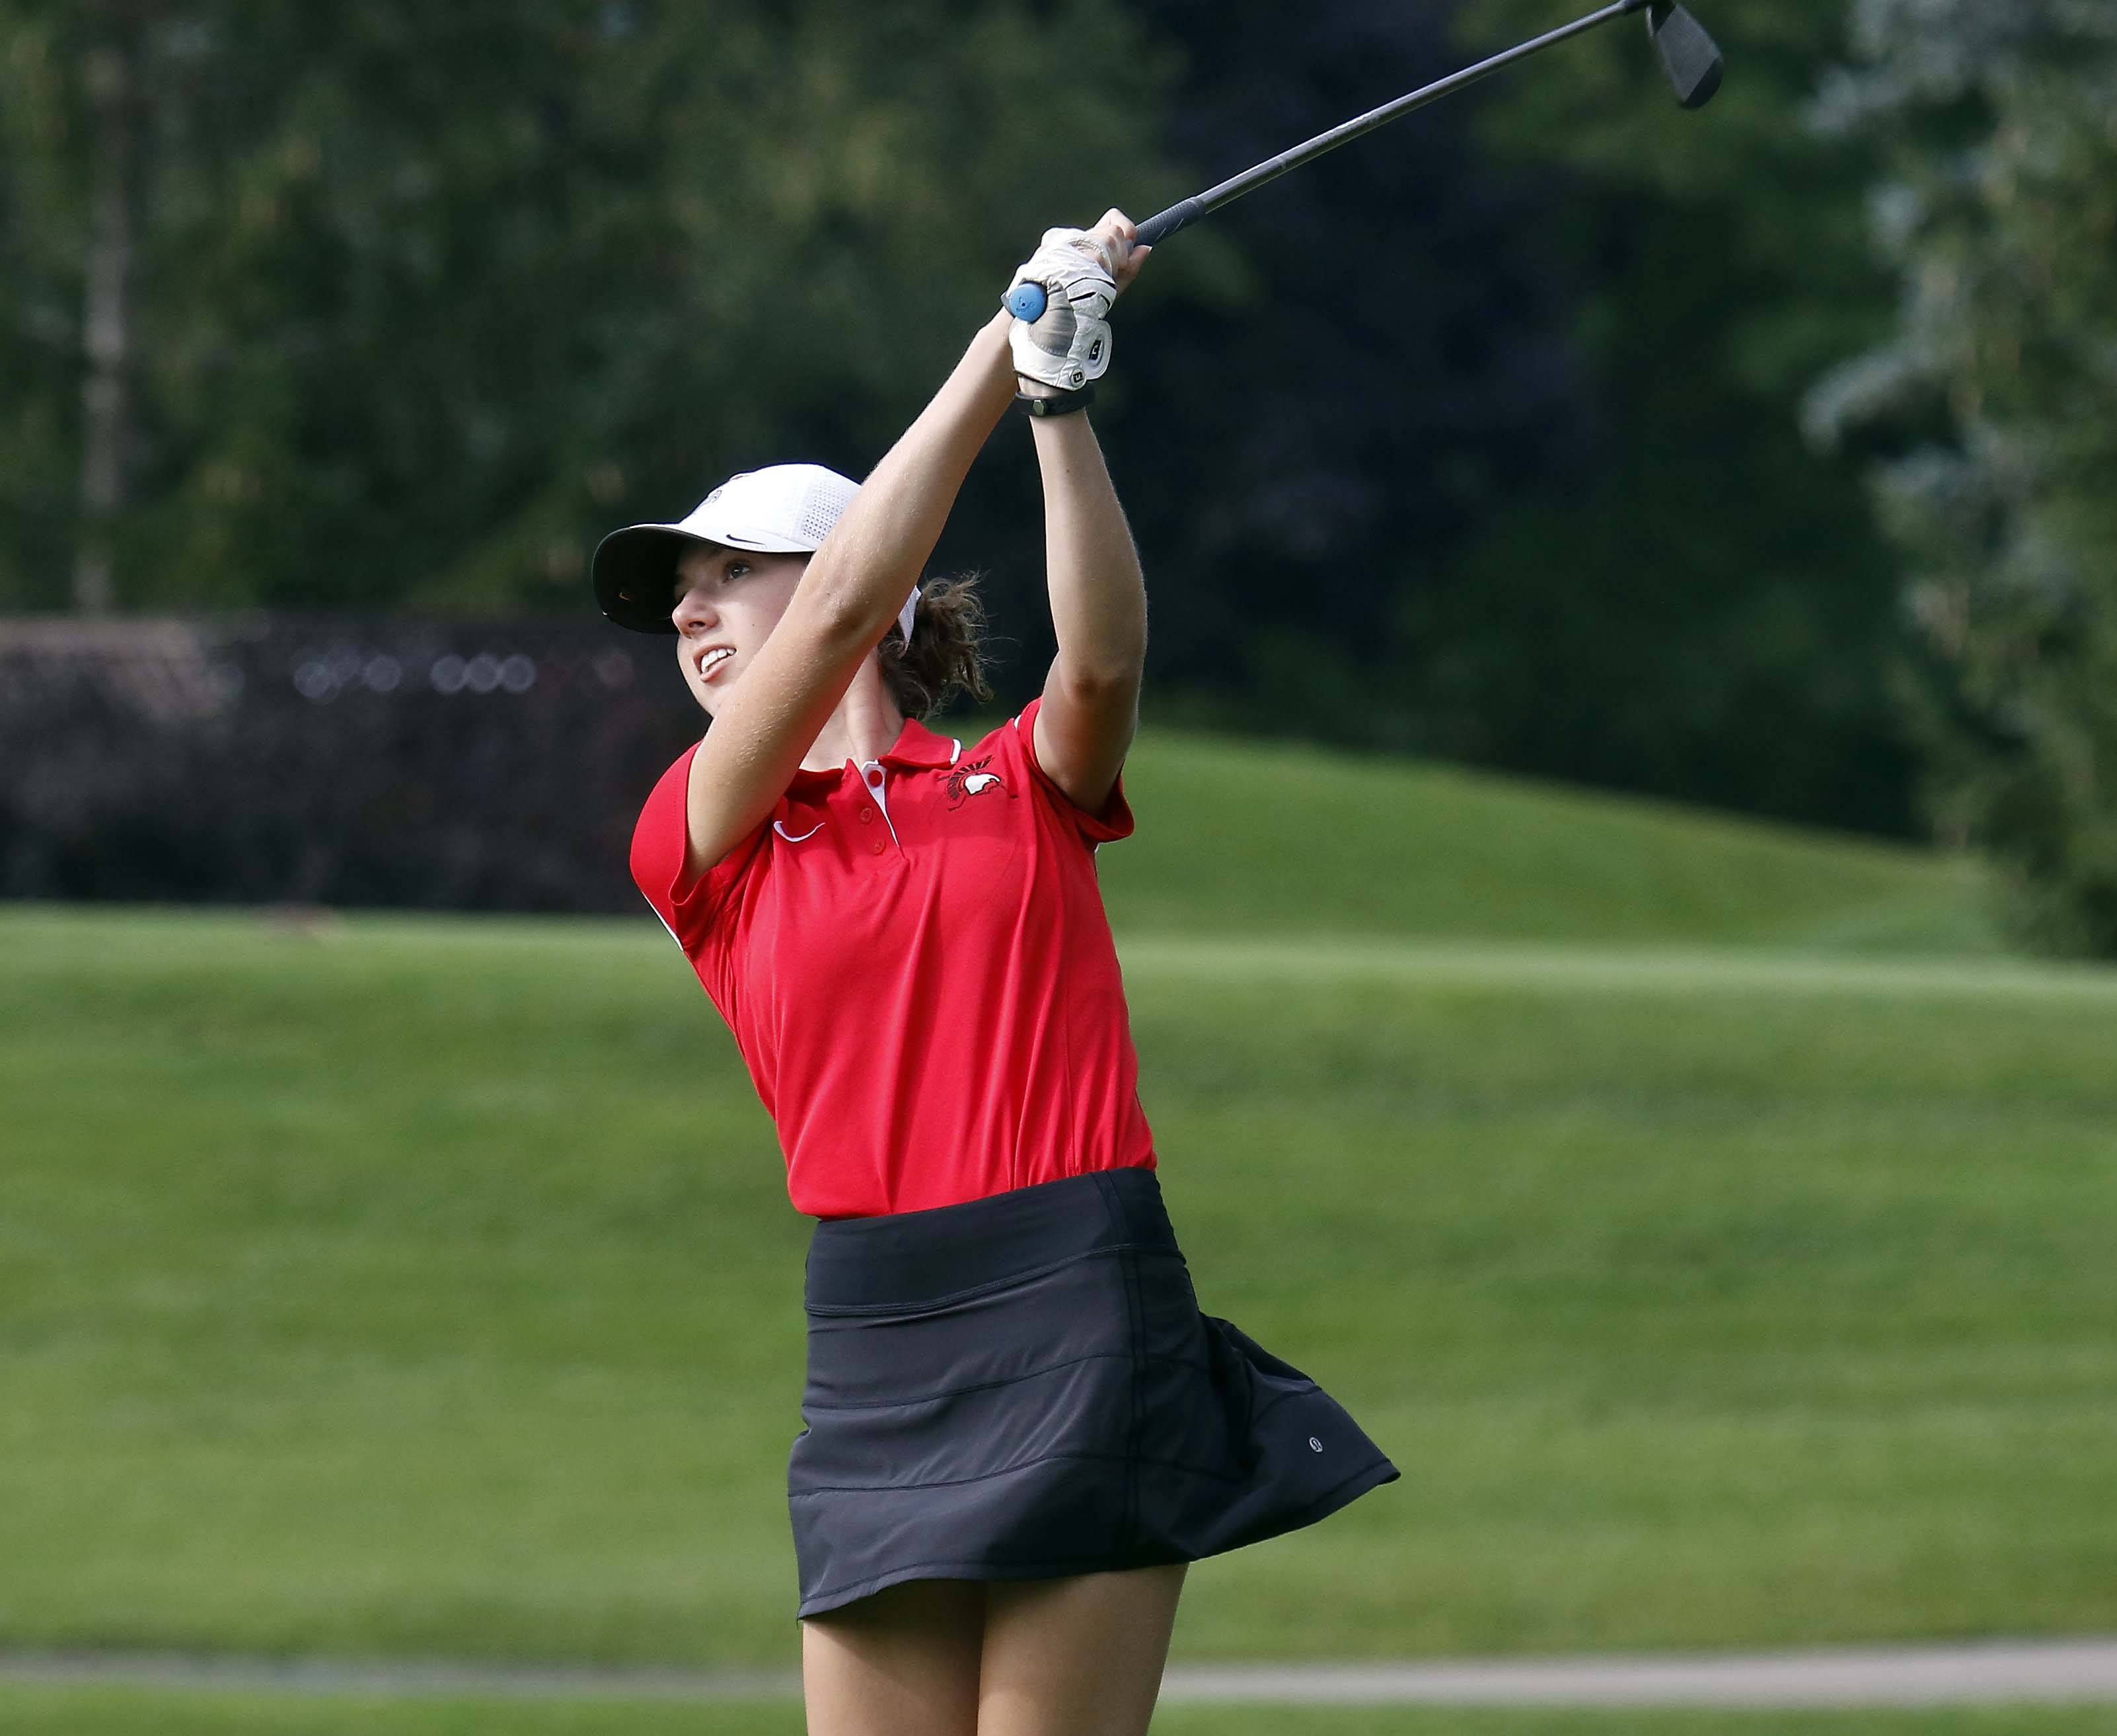 Deerfield's Kailey Bertram Wednesday during the Stevenson girls golf regional at Arboretum Golf Club in Buffalo Grove.